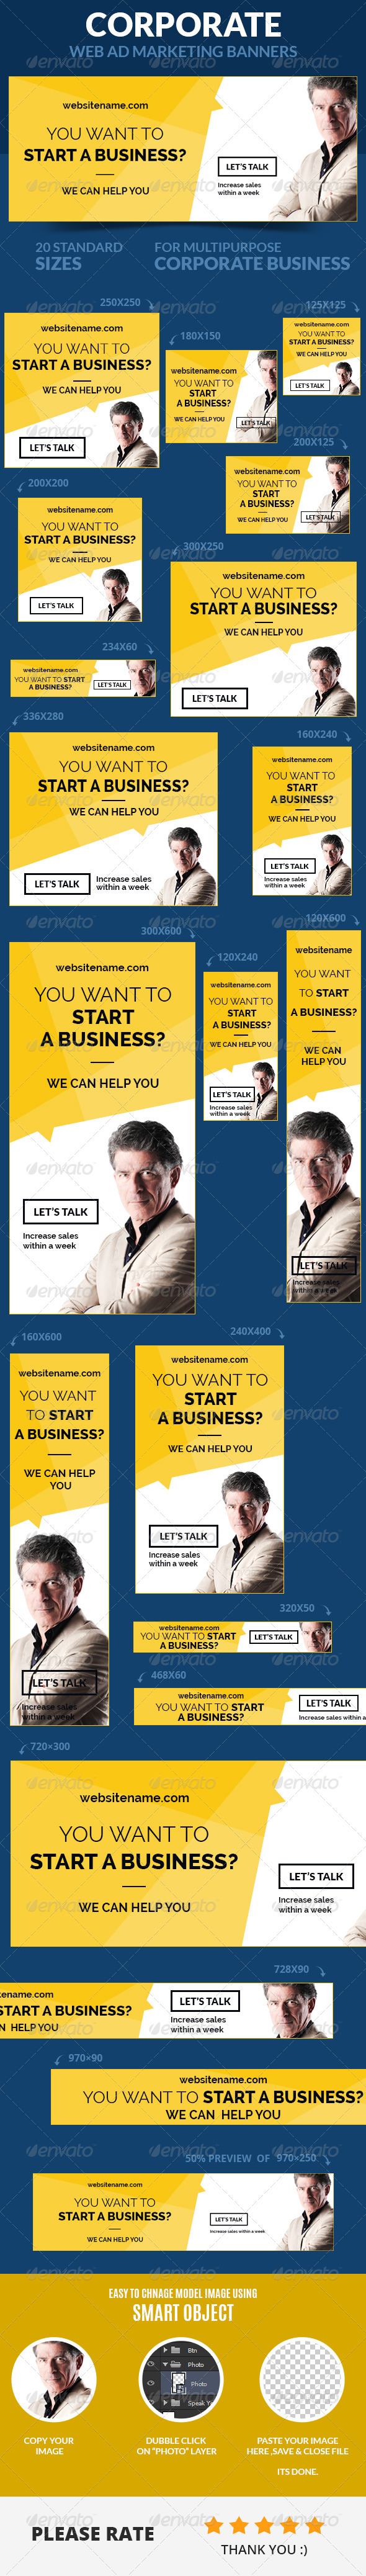 Corporate Web Ad Marketing Banners